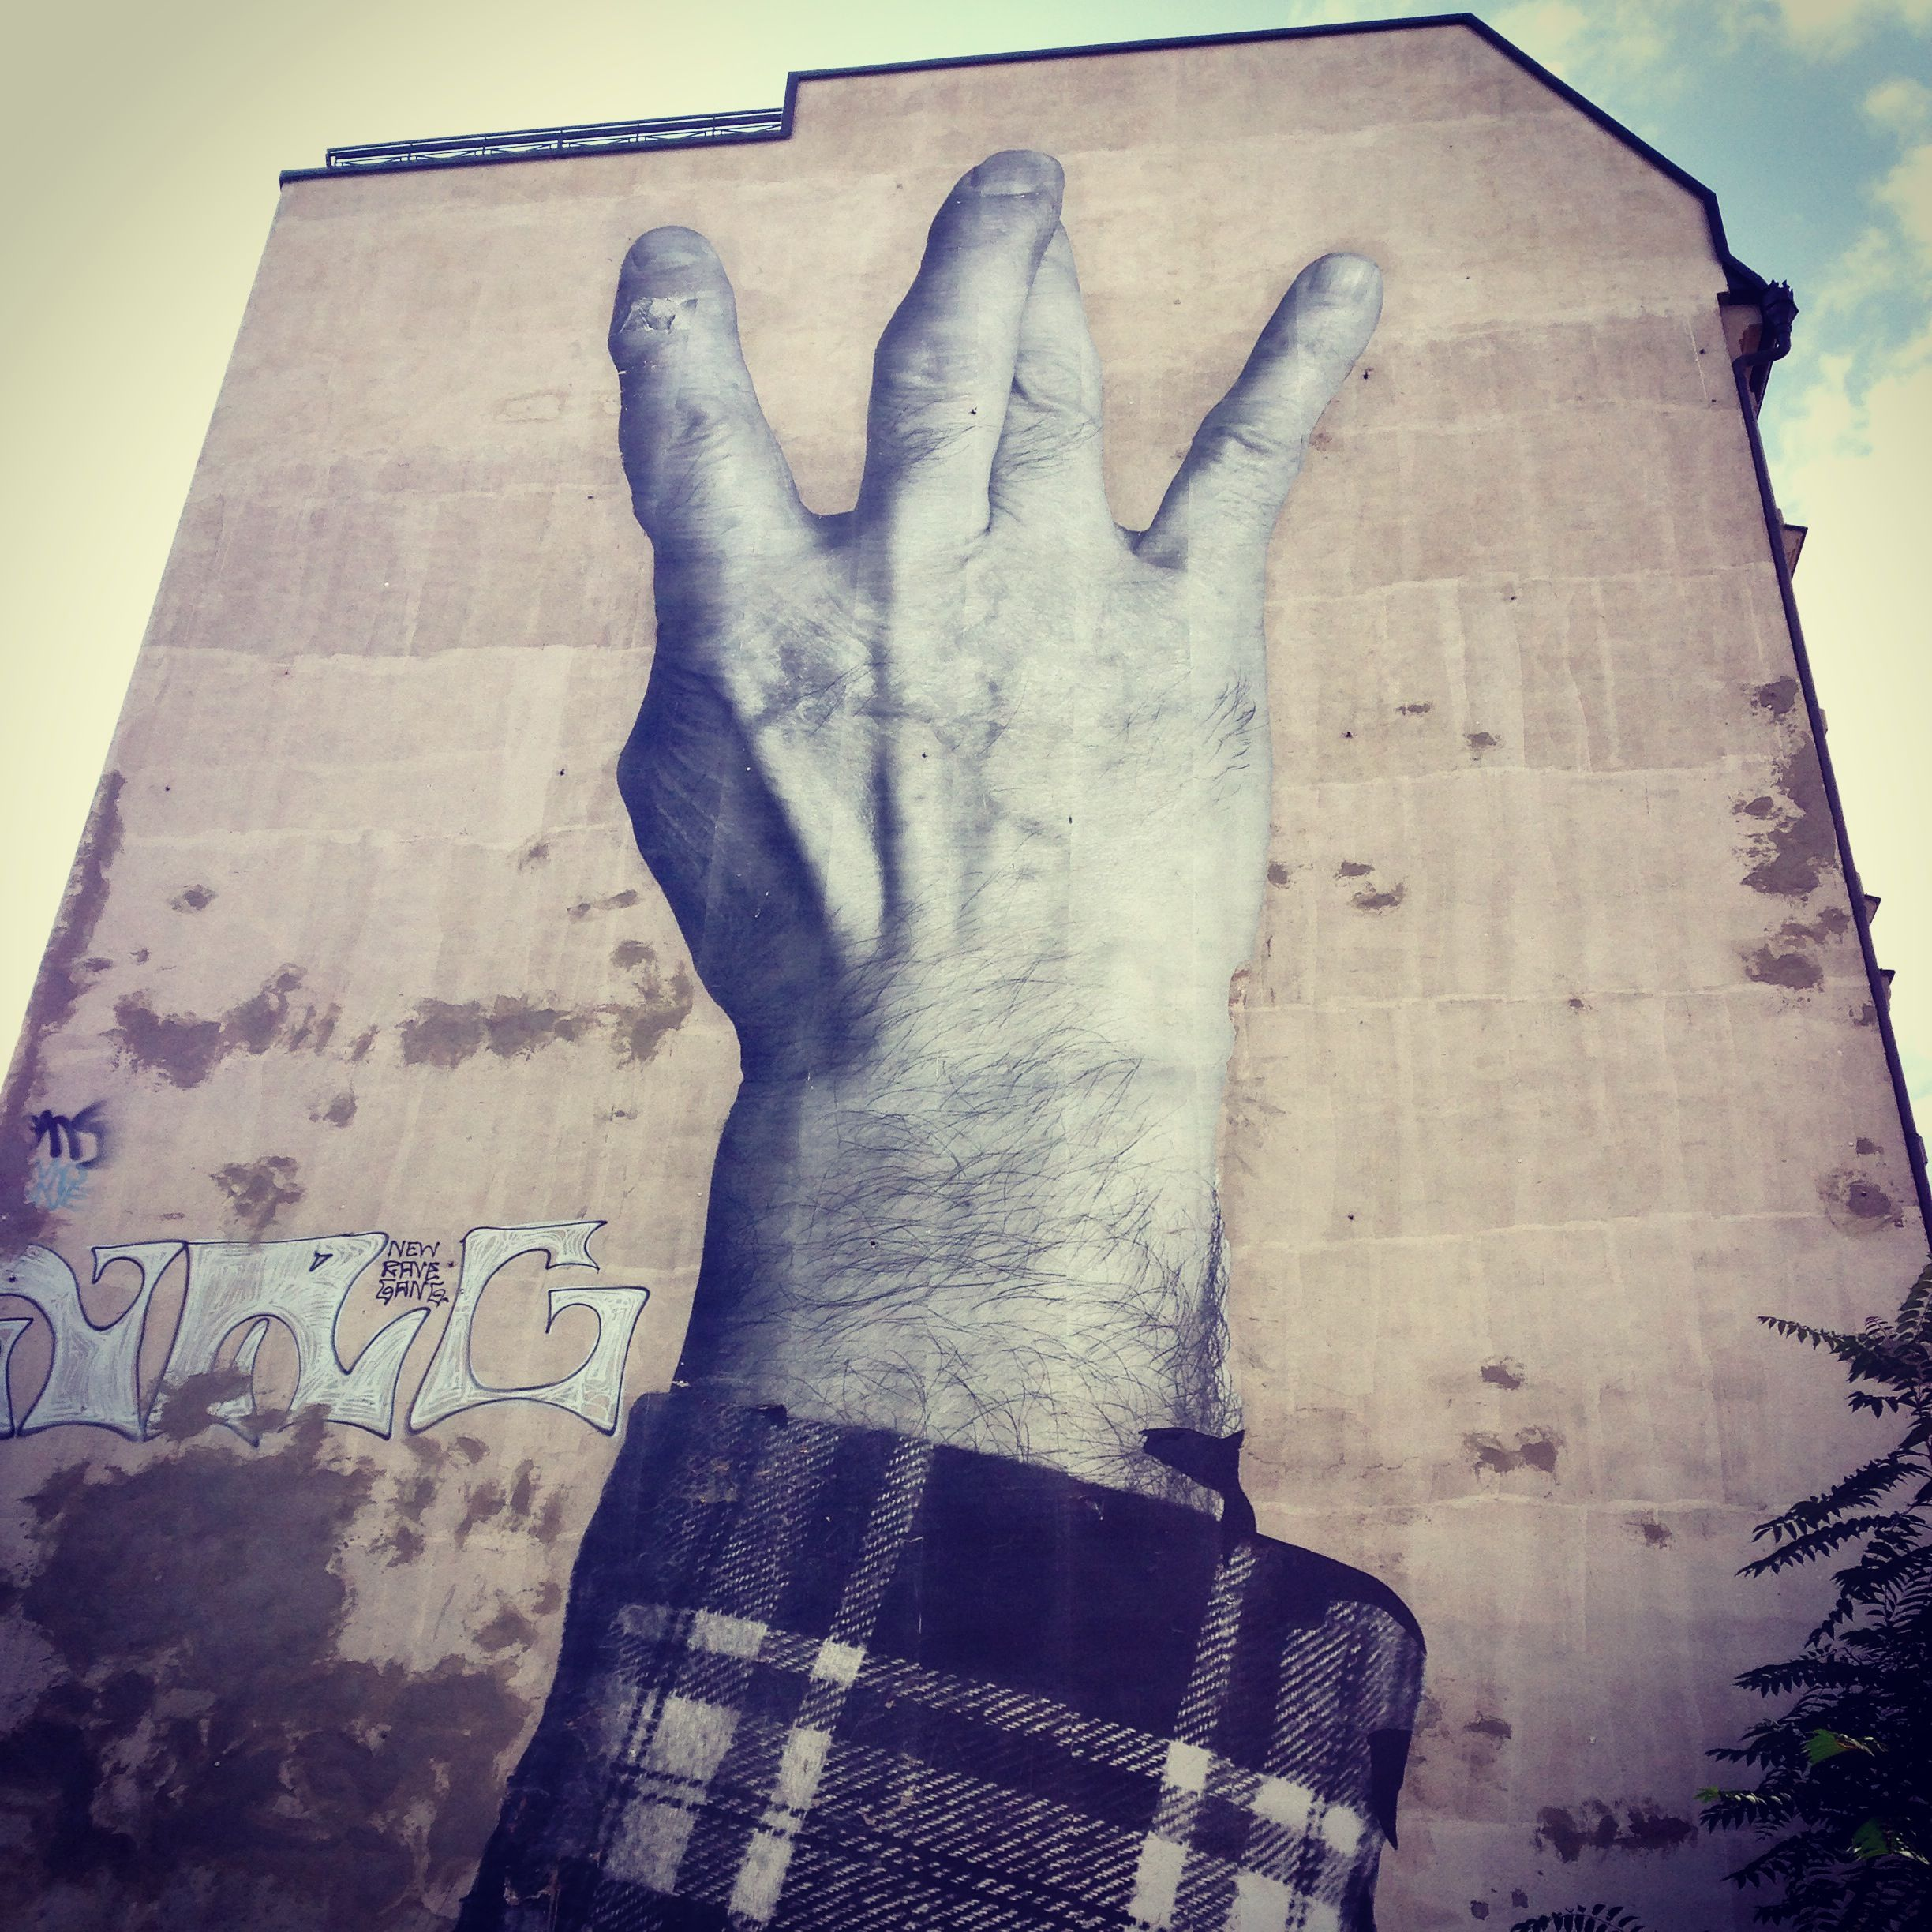 In April 2013,  JR  works on over 15 buildings in the Berlin city limits, within the context of his project 'The Wrinkles of the City'. JR is portrays here older people who have lived through the changes and upheavals of their city.  #JR #Berlin #streetart #thewrinklesofthecity Invalidenstrasse, Mitte, Berlin (not far away from the DM shop)